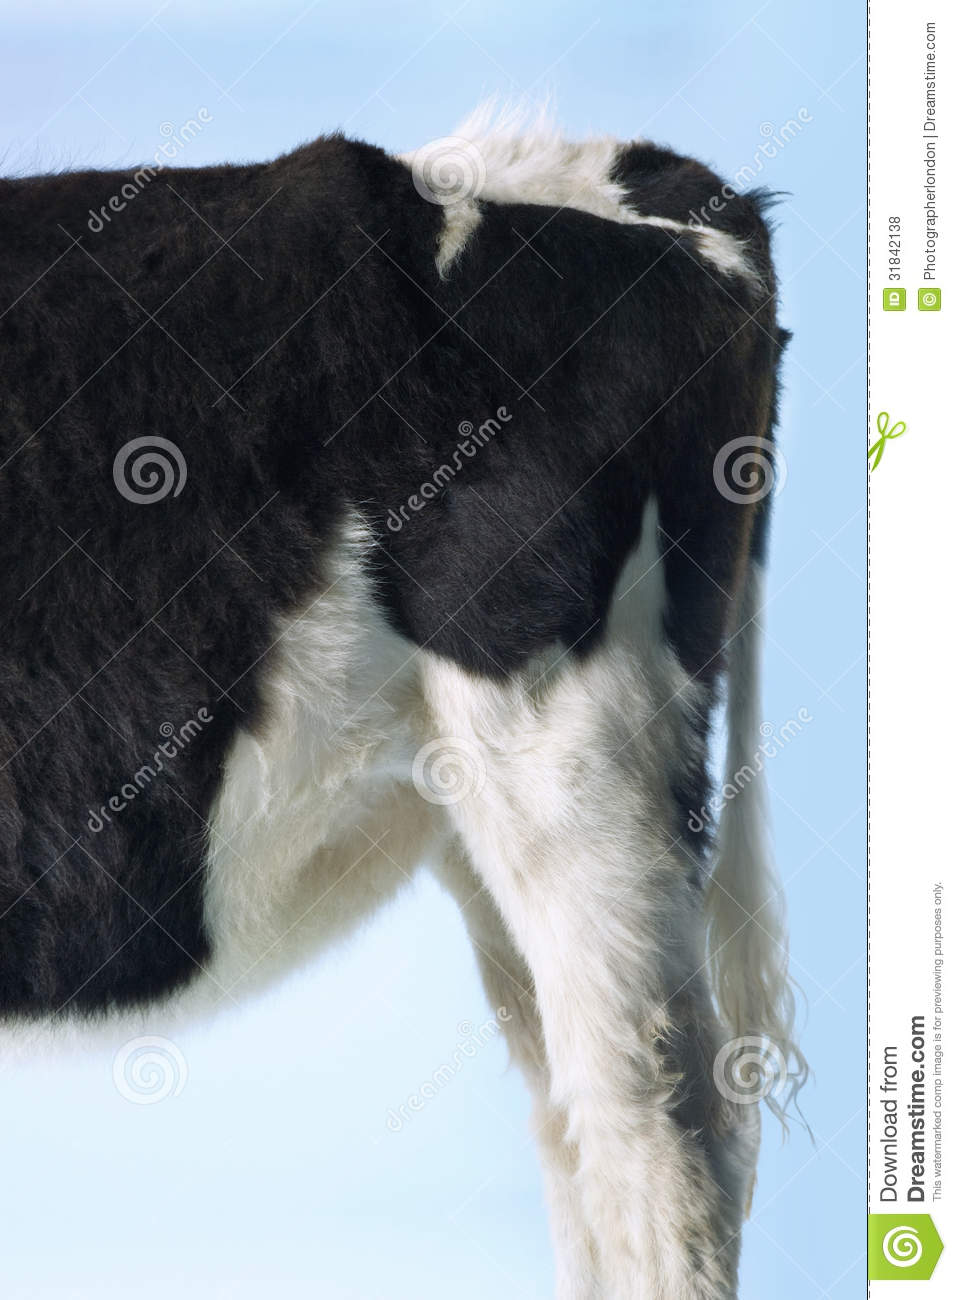 Rear End Of Cow Against Sky